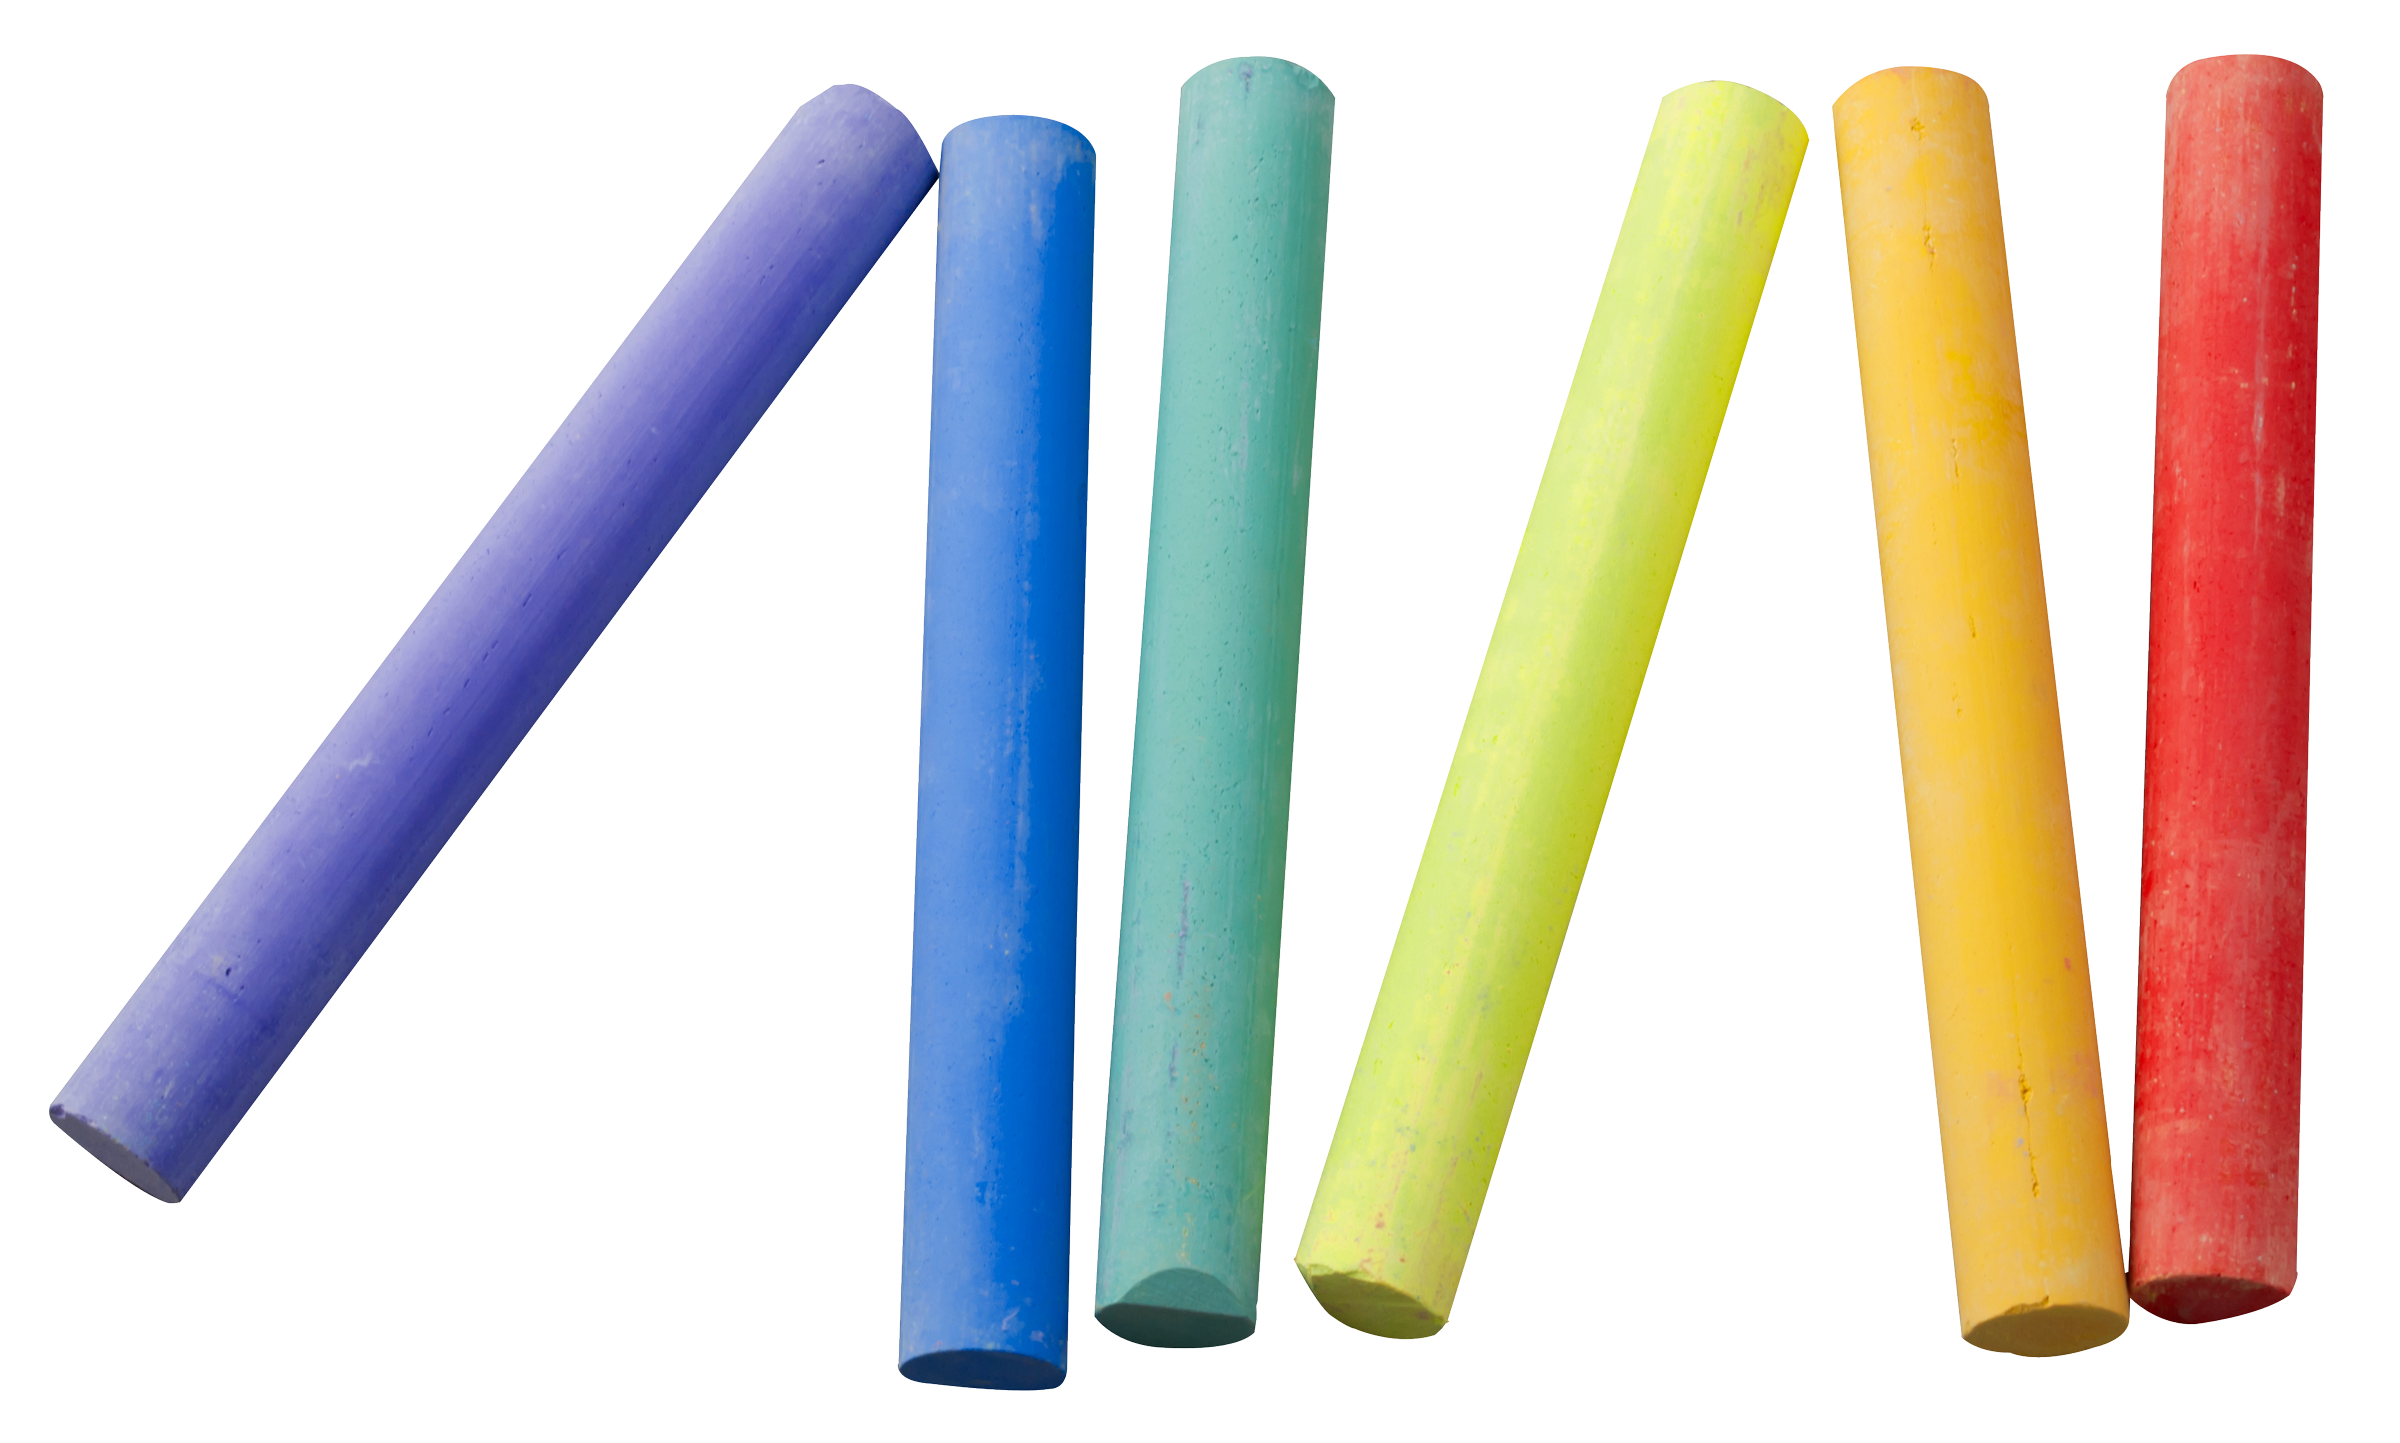 Png transparent images all. Chalk clipart colored chalk